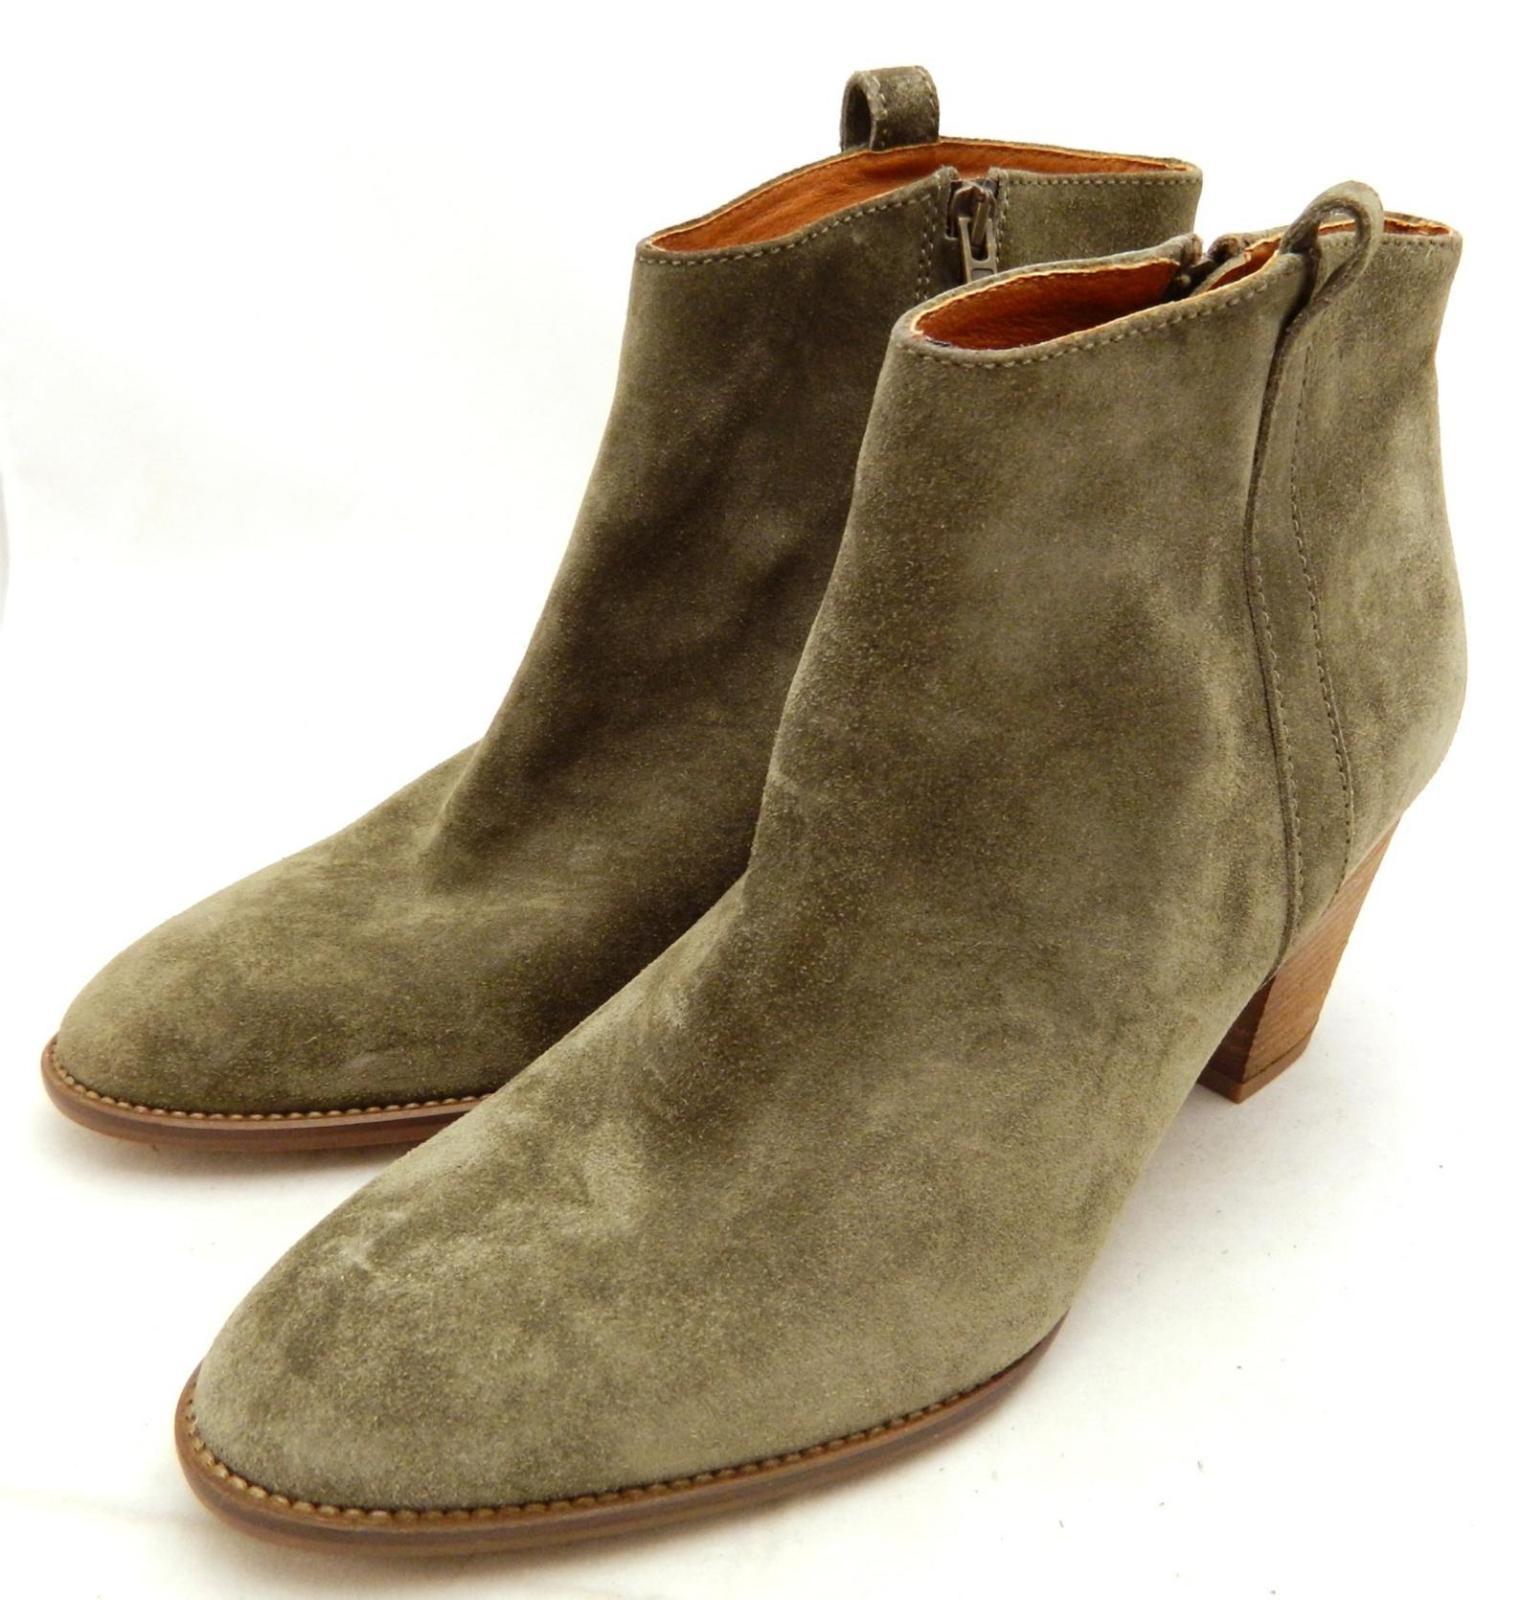 madewell 218 the billie boot 7 marsh brown boots